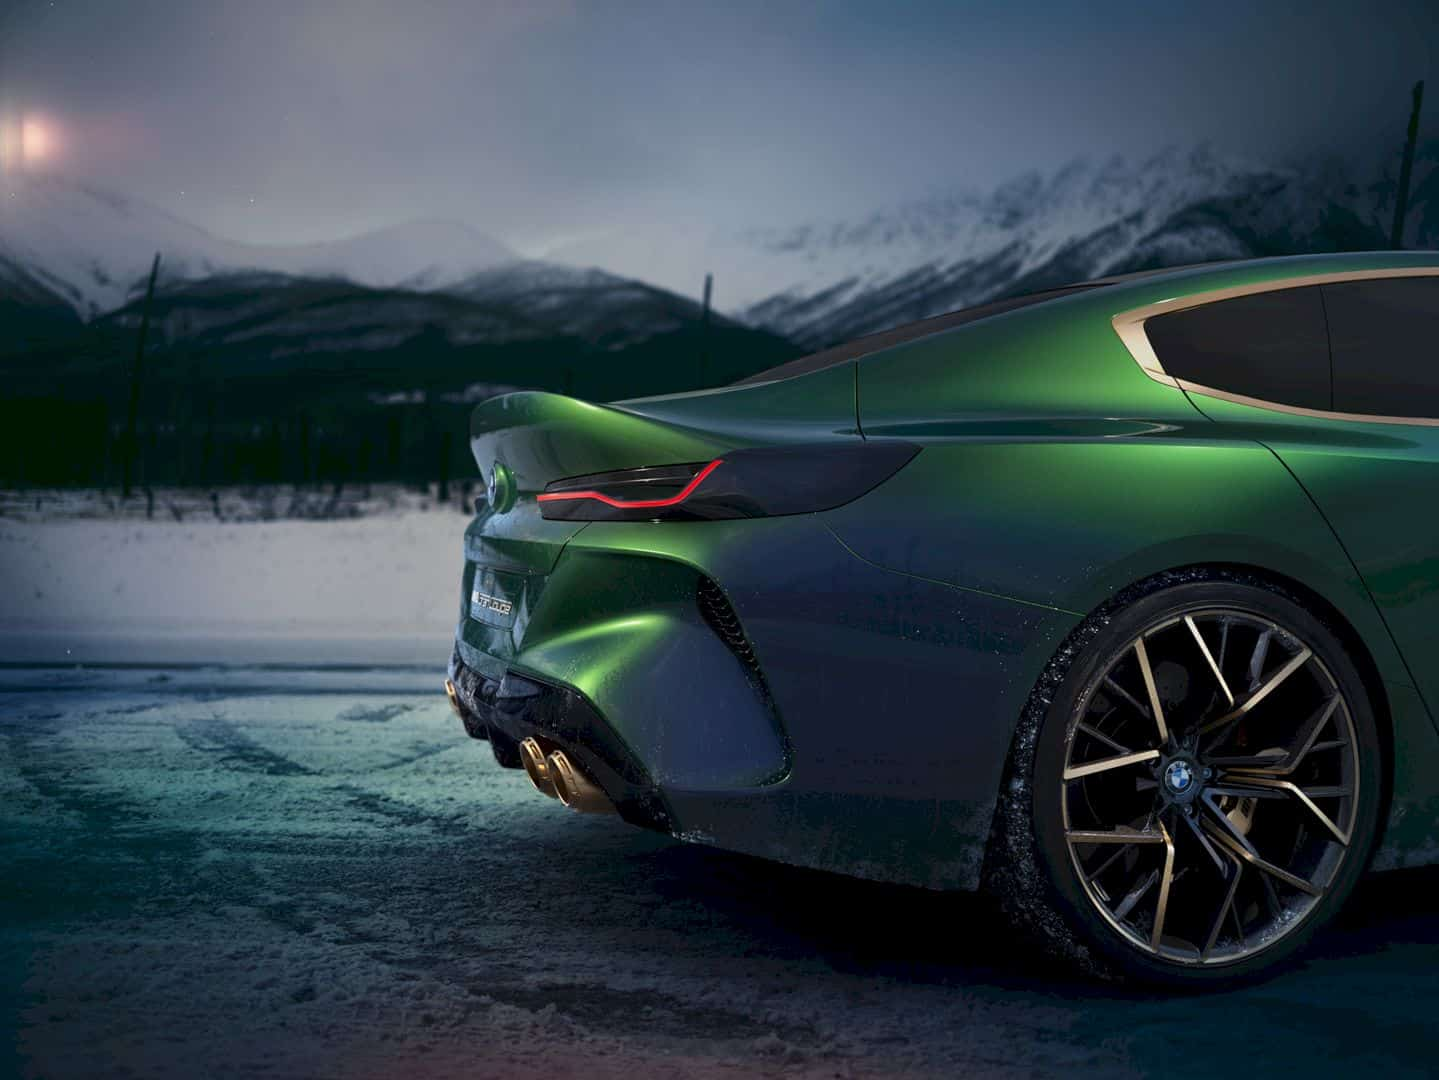 The Bmw Concept M8 Gran Coupe 2